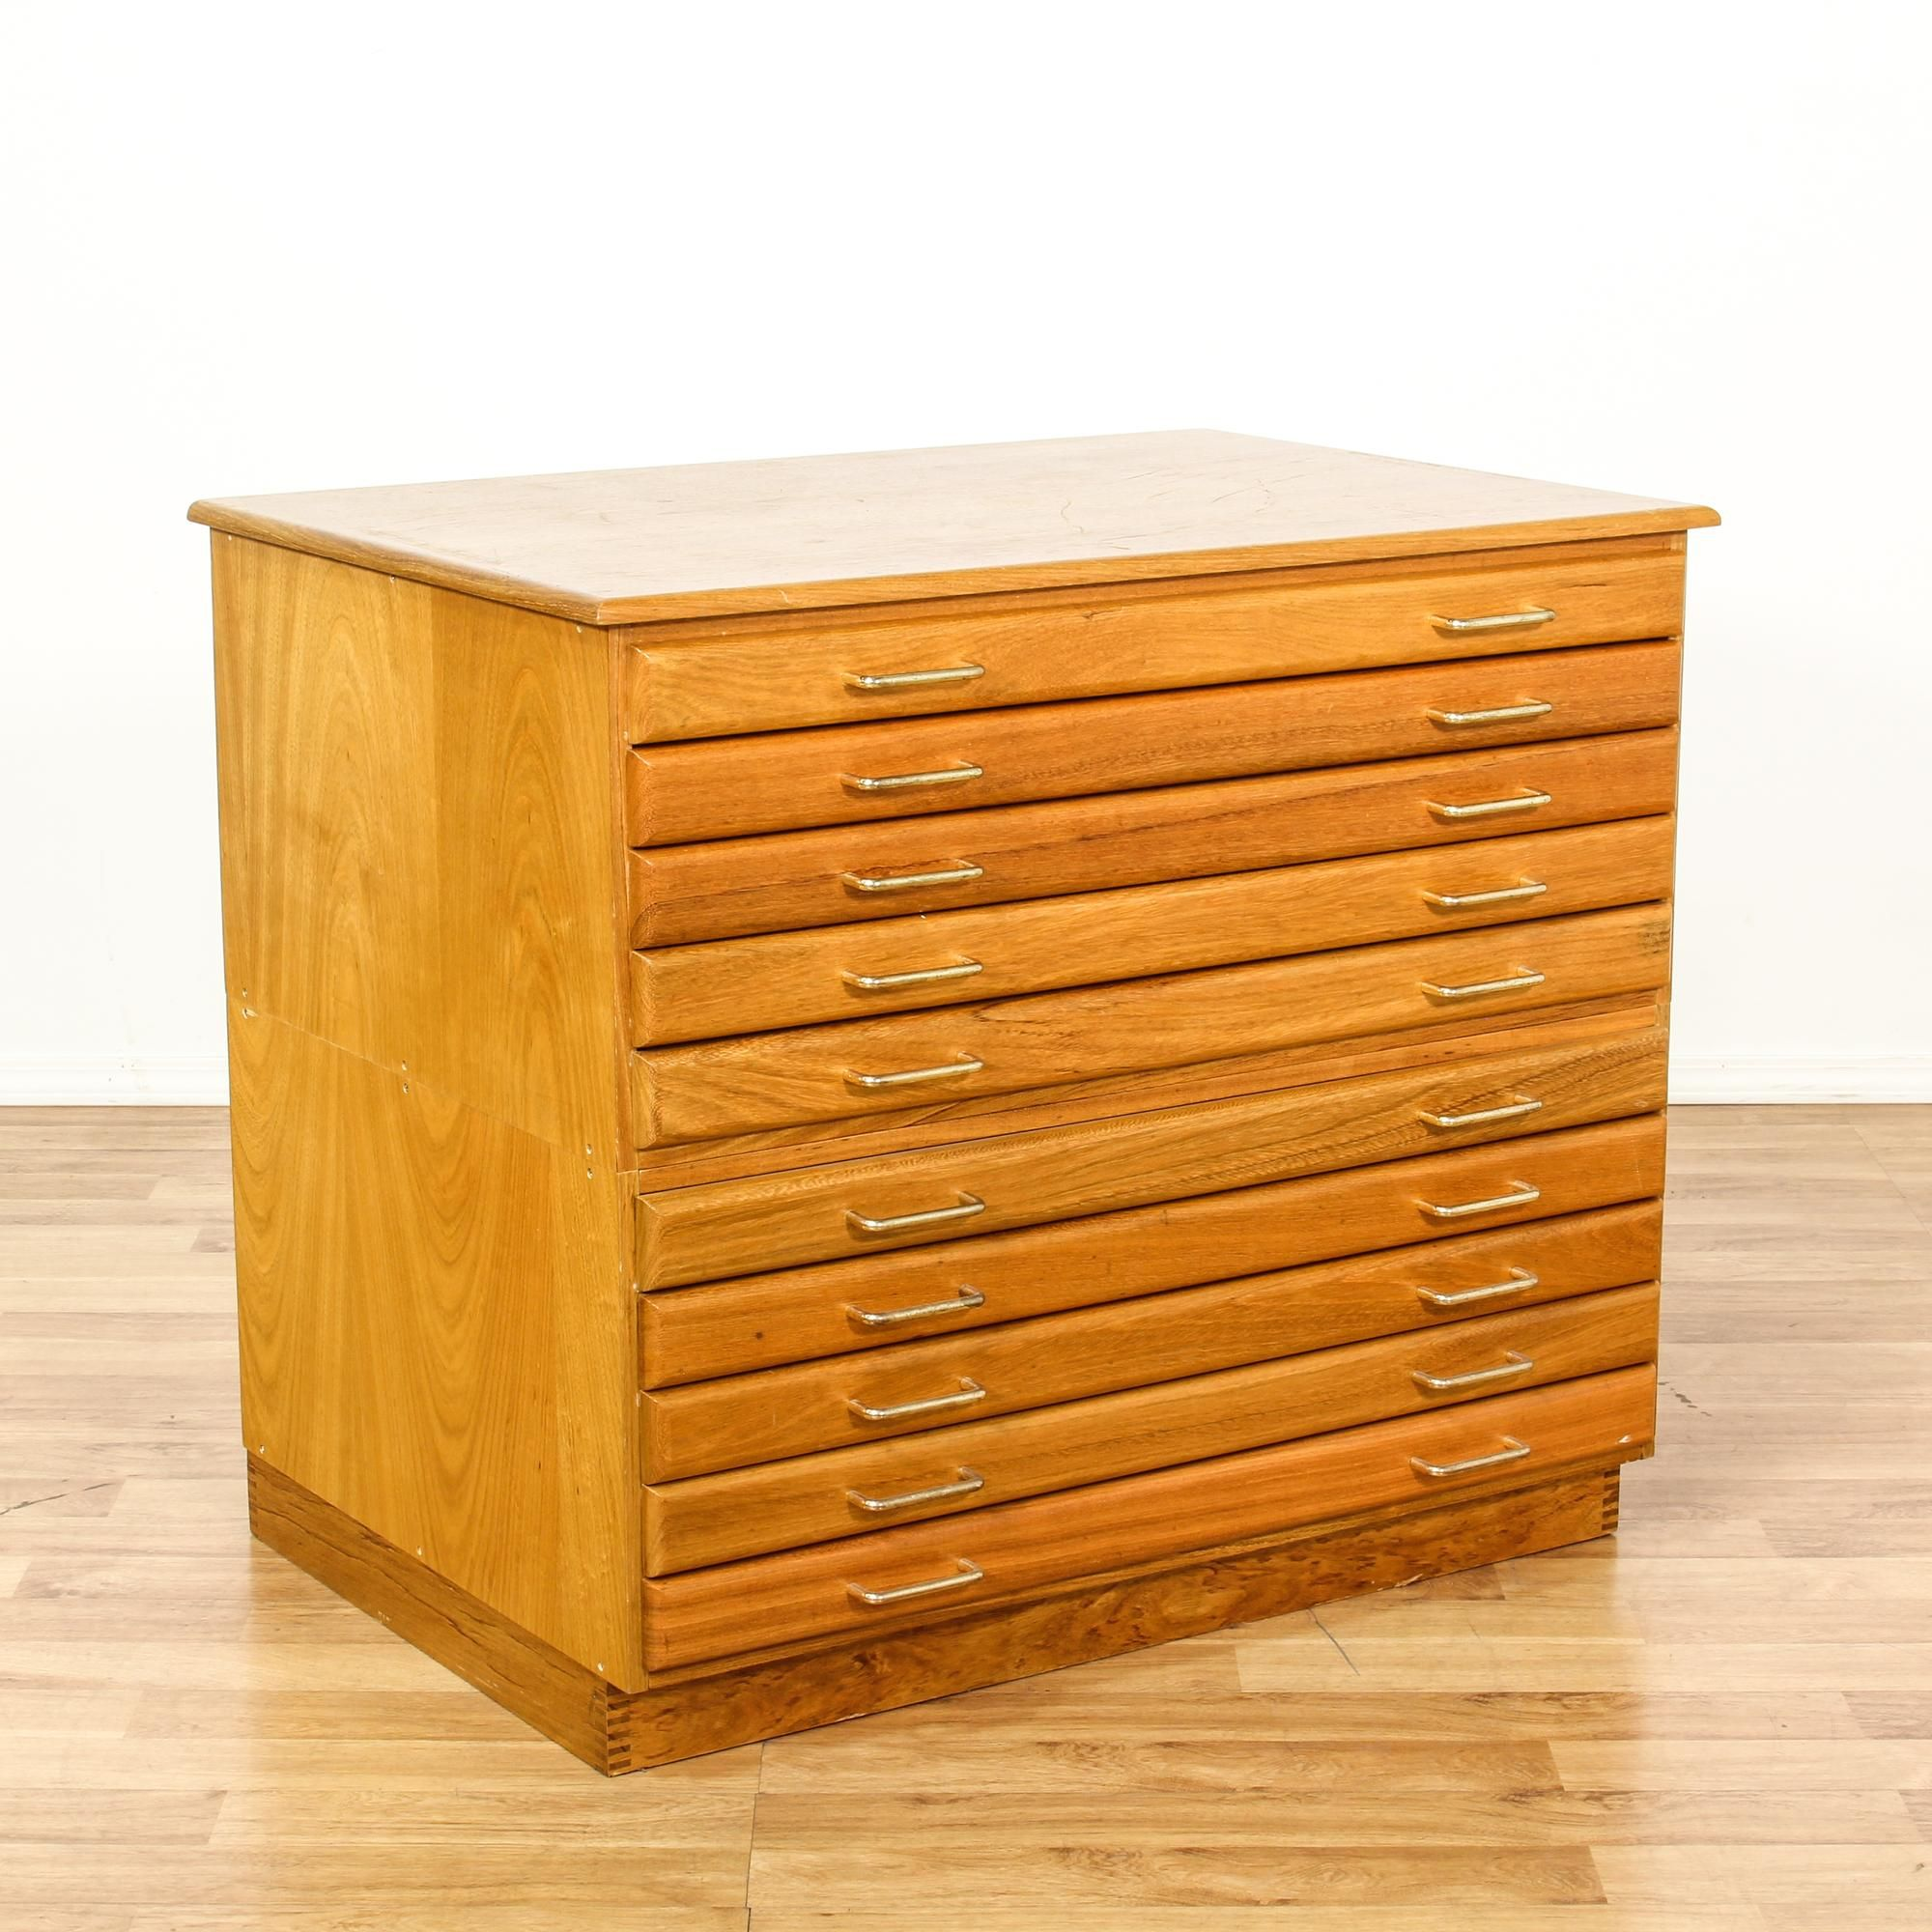 This Flat File Cabinet Is Featured In A Solid Wood With A Glossy Light Maple Finish This Blueprint And Map Filing Cabinet Has 10 Skinny Dra Flat File Cabinet Filing Cabinet